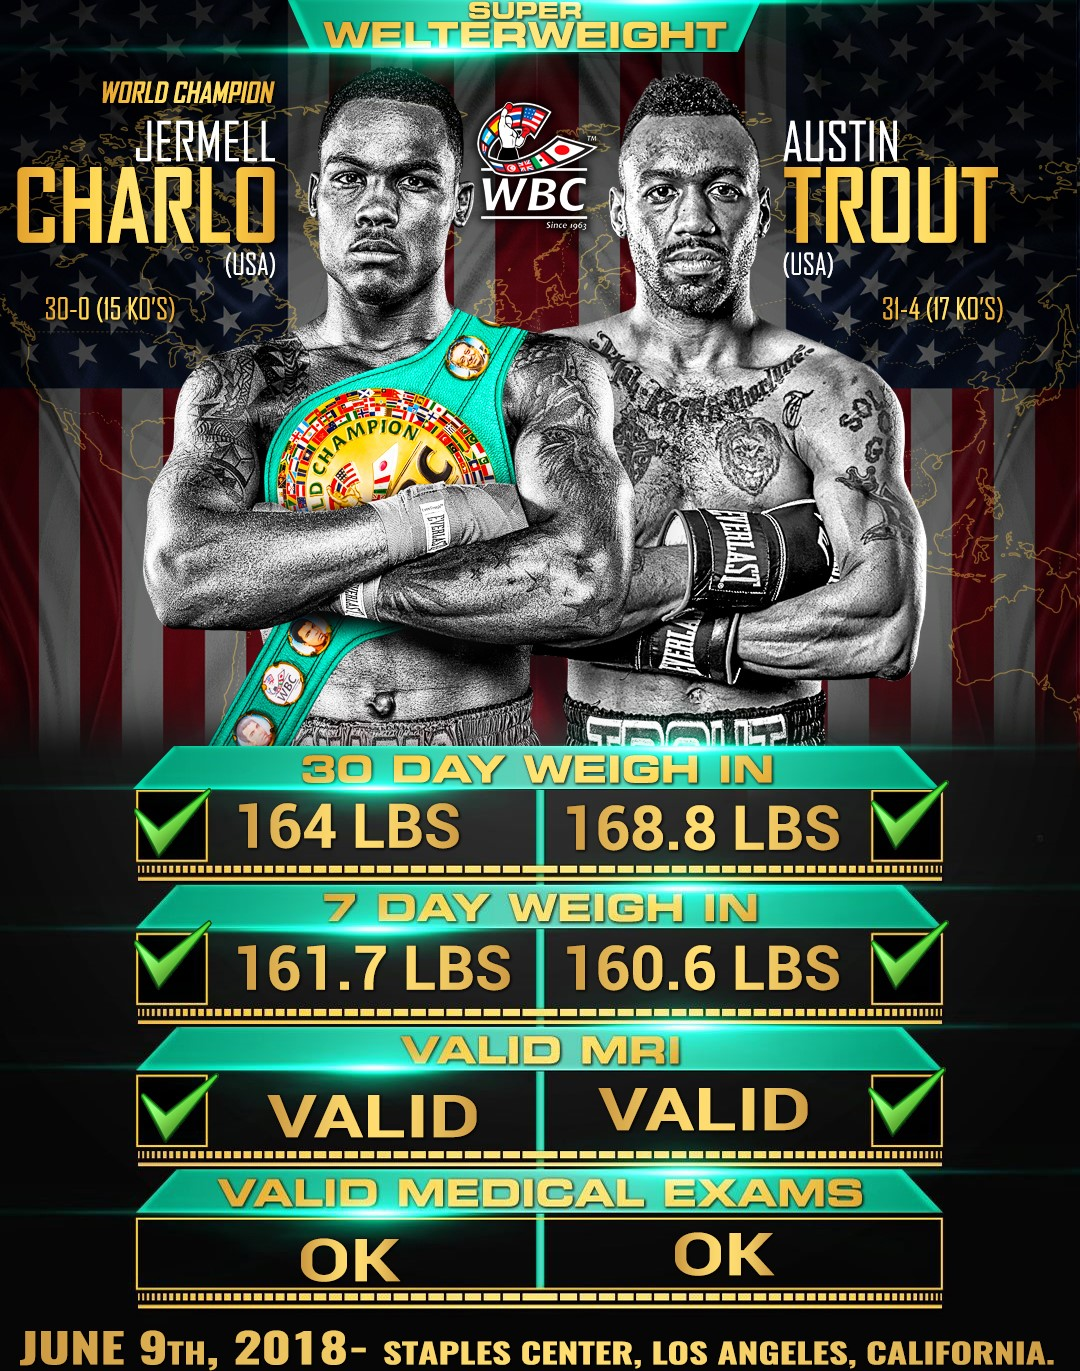 KT CHARLO TROUT